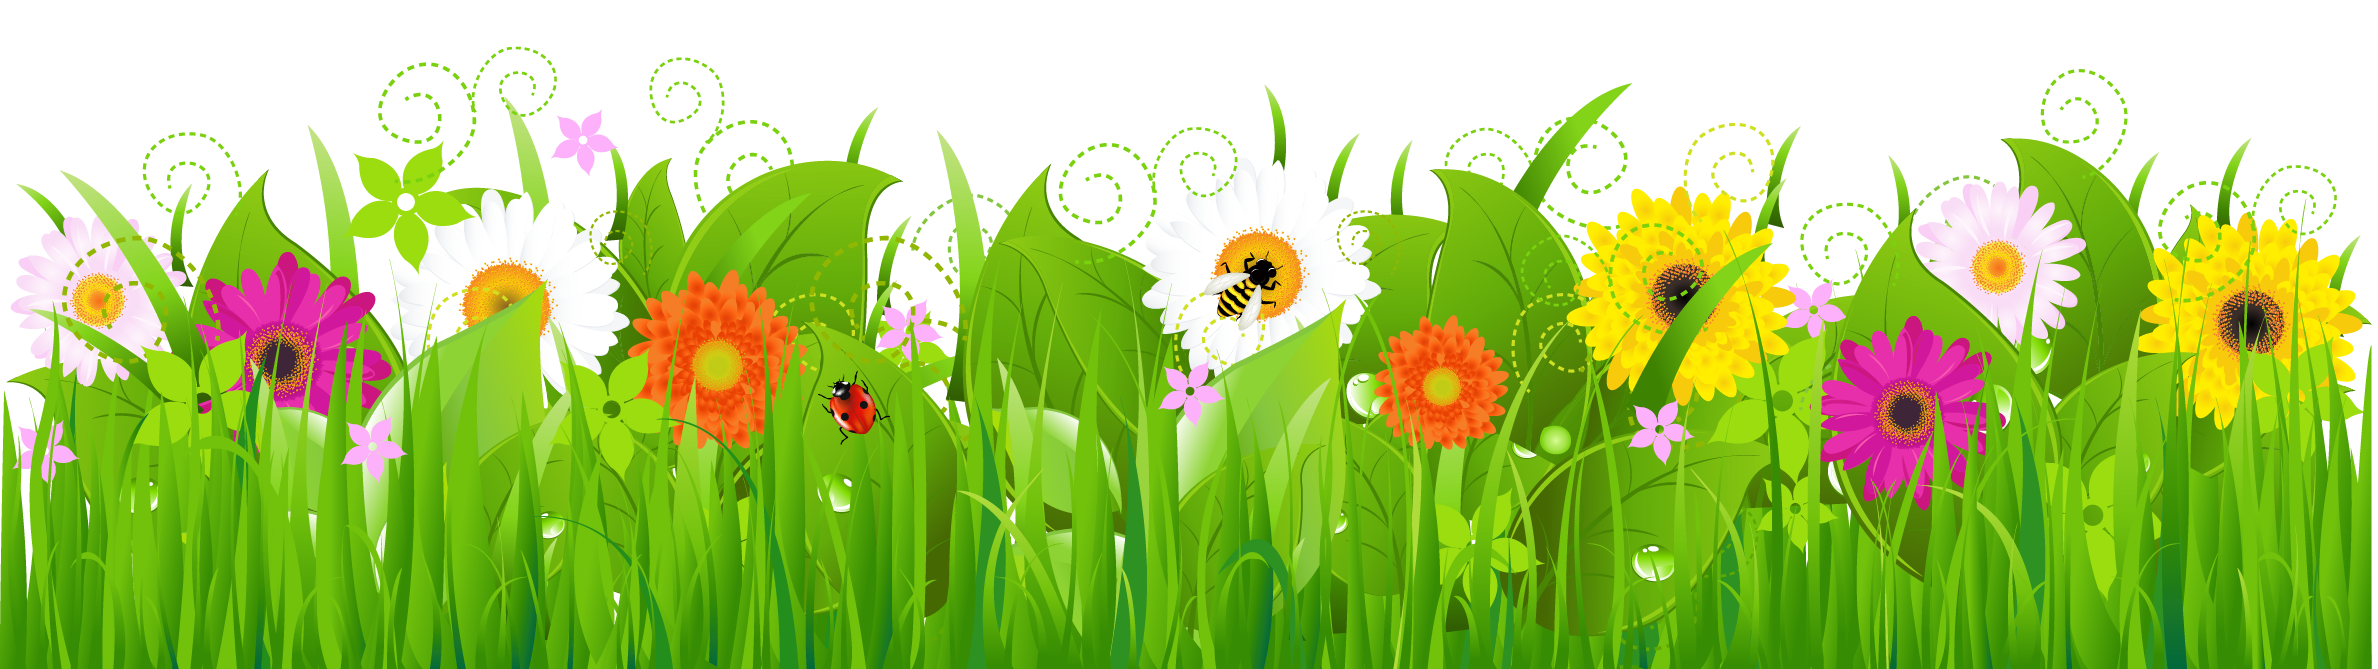 hight resolution of clip art grass clipart cliparts for you clipartix 2